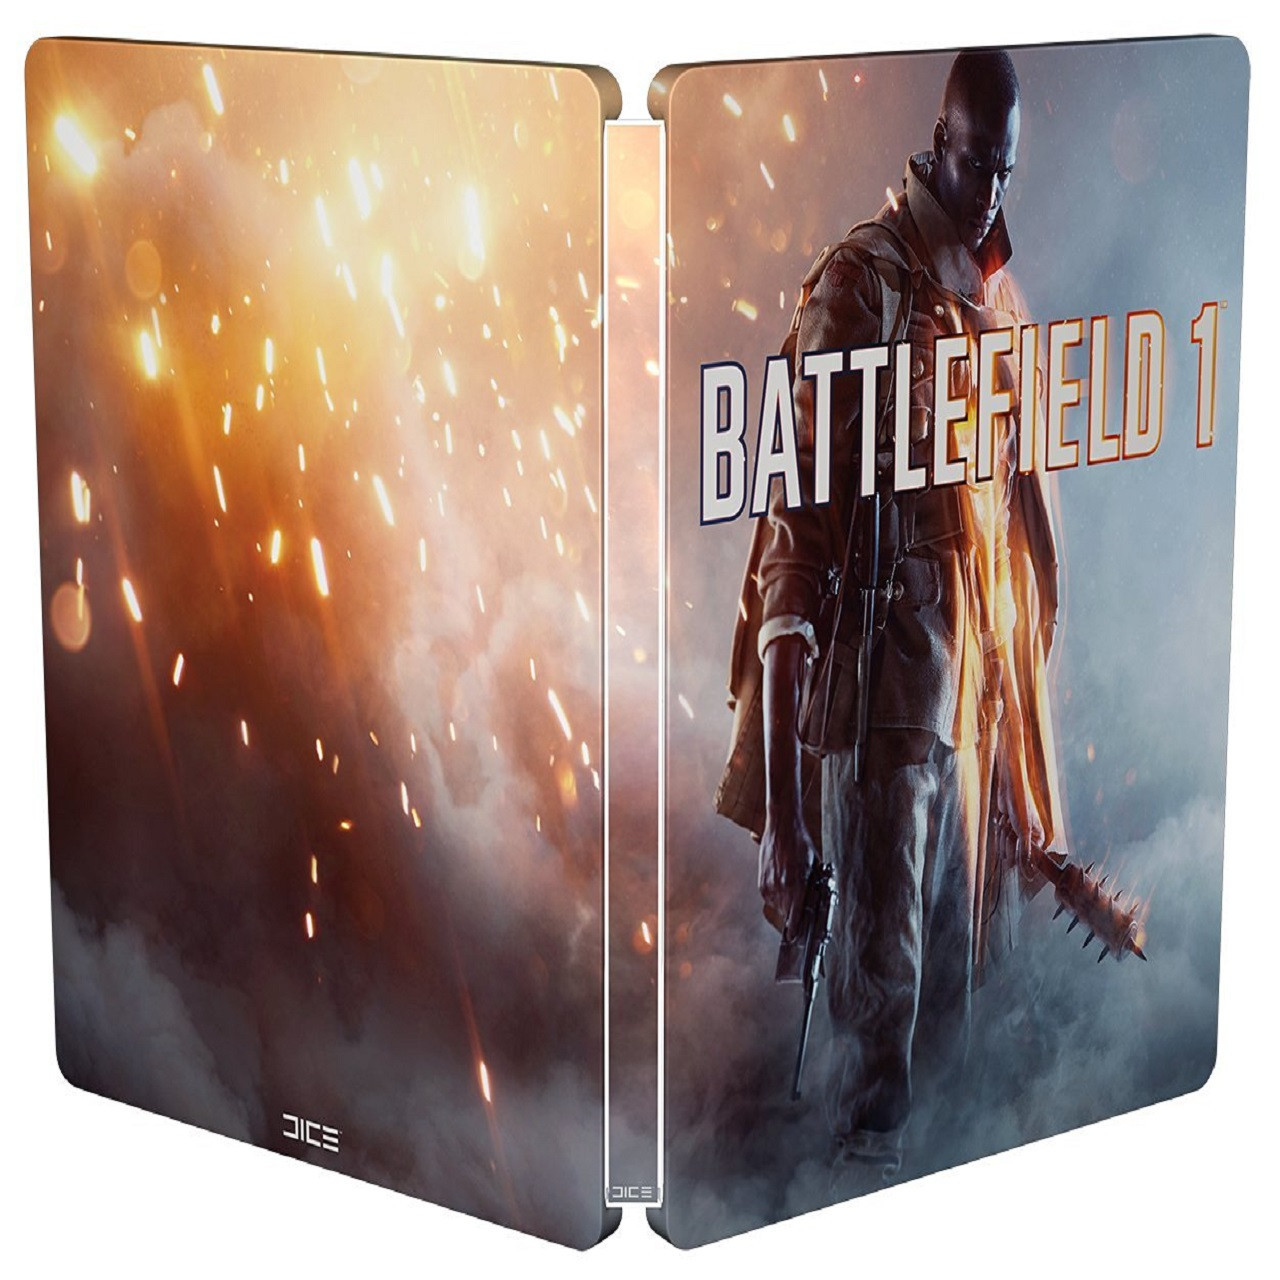 Steelbook Battlefield 1 PS4/XBOX (БЕЗ ГРИ)